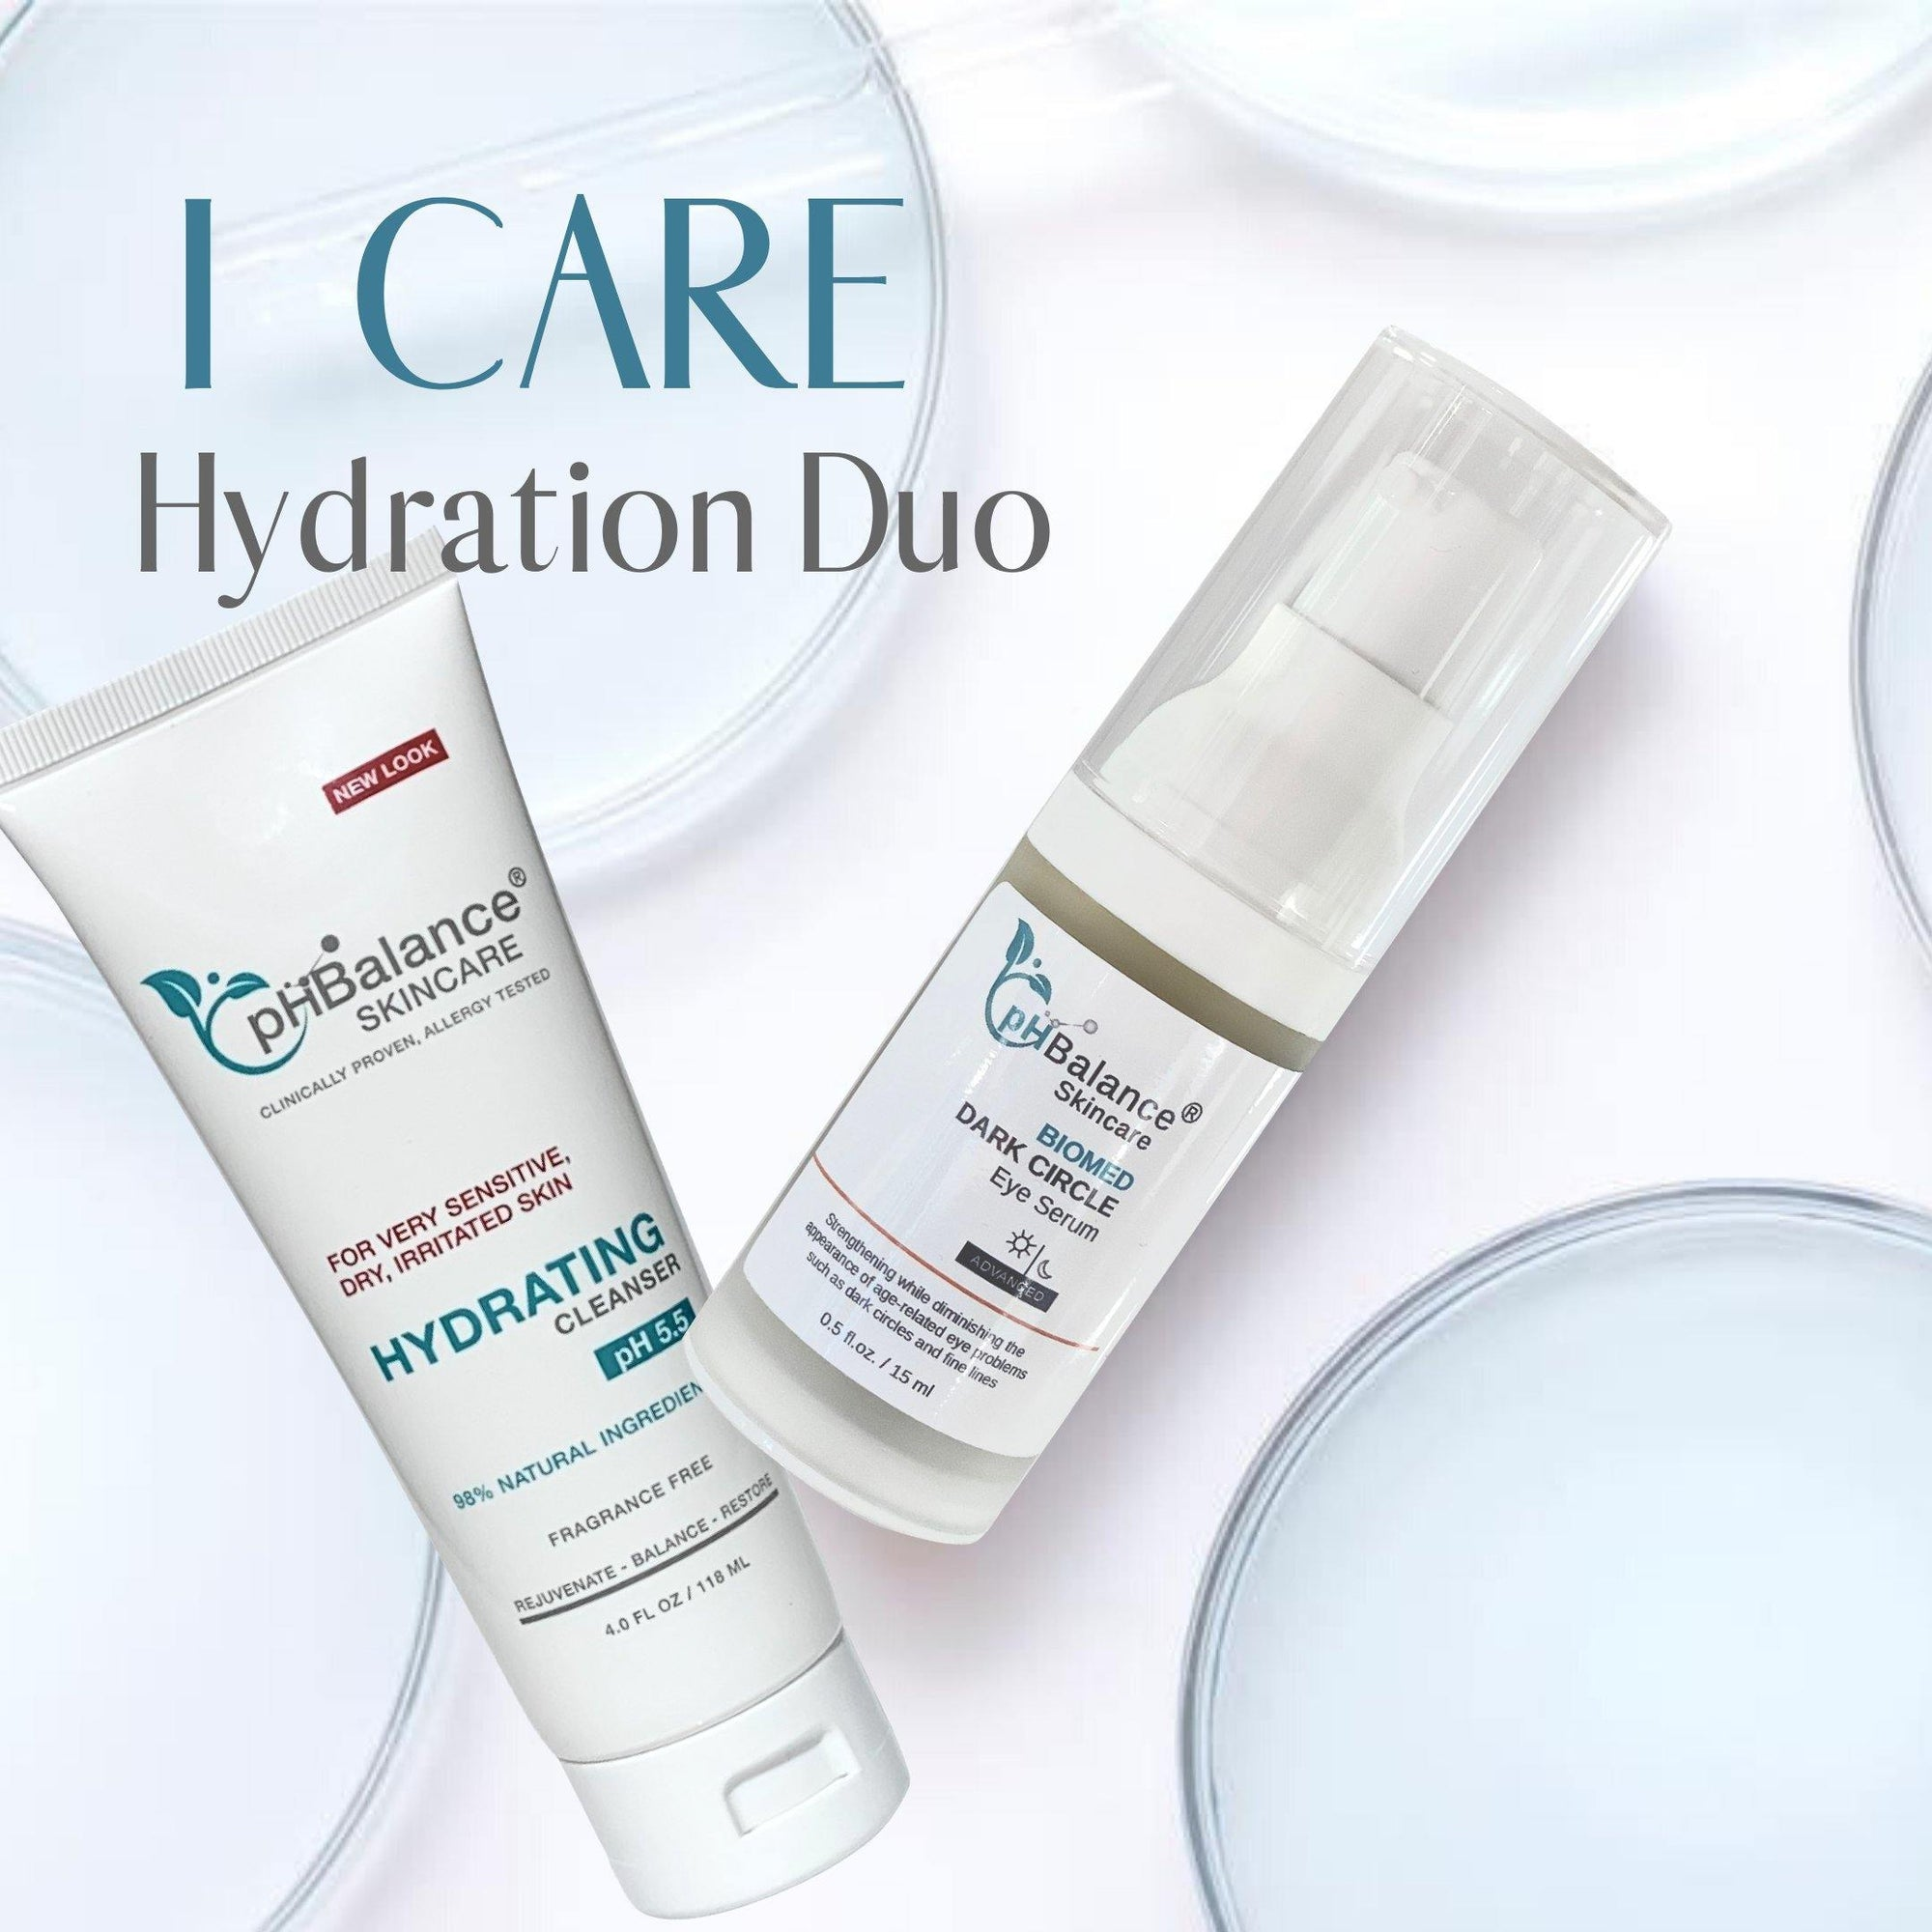 I Care Hydration Duo